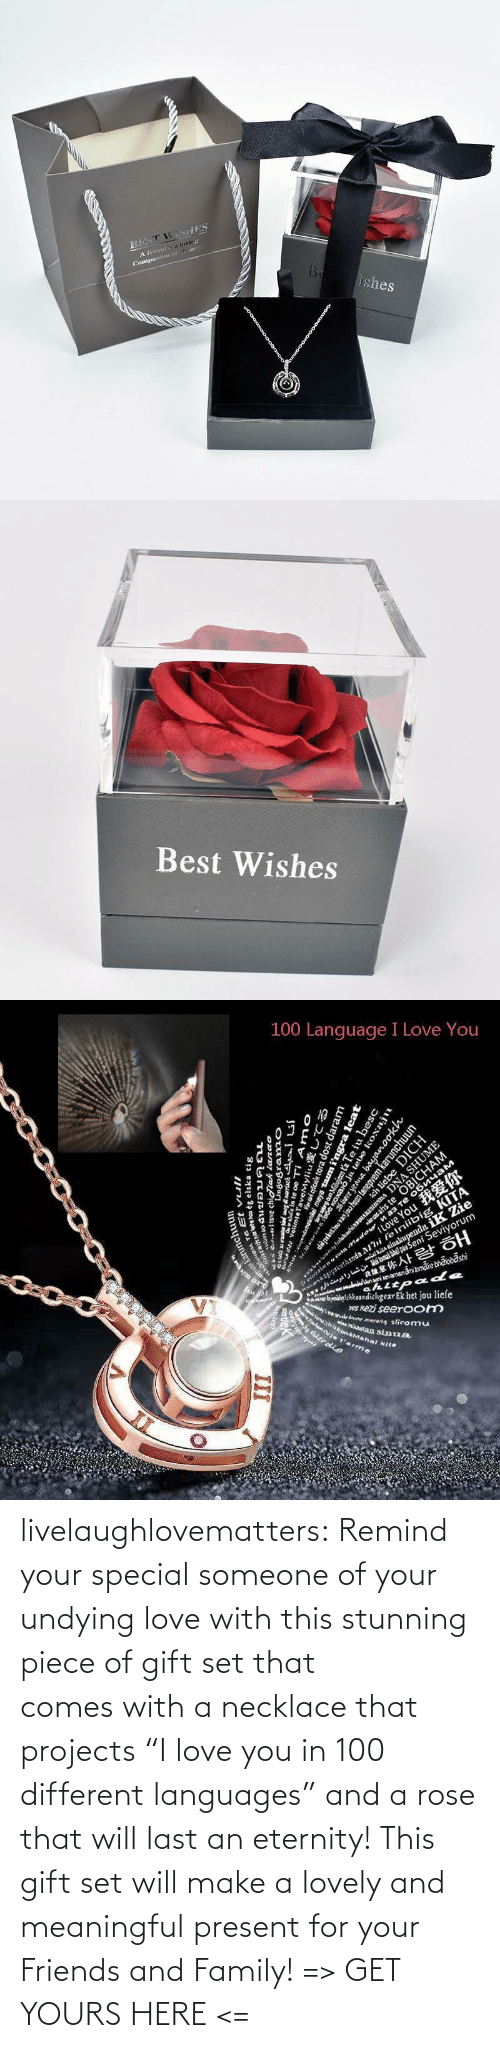 "Friends And Family: livelaughlovematters:  Remind your special someone of your undying love with this stunning piece of gift set that comes with a necklace that projects ""I love you in 100 different languages"" and a rose that will last an eternity! This gift set will make a lovely and meaningful present for your Friends and Family! => GET YOURS HERE <="